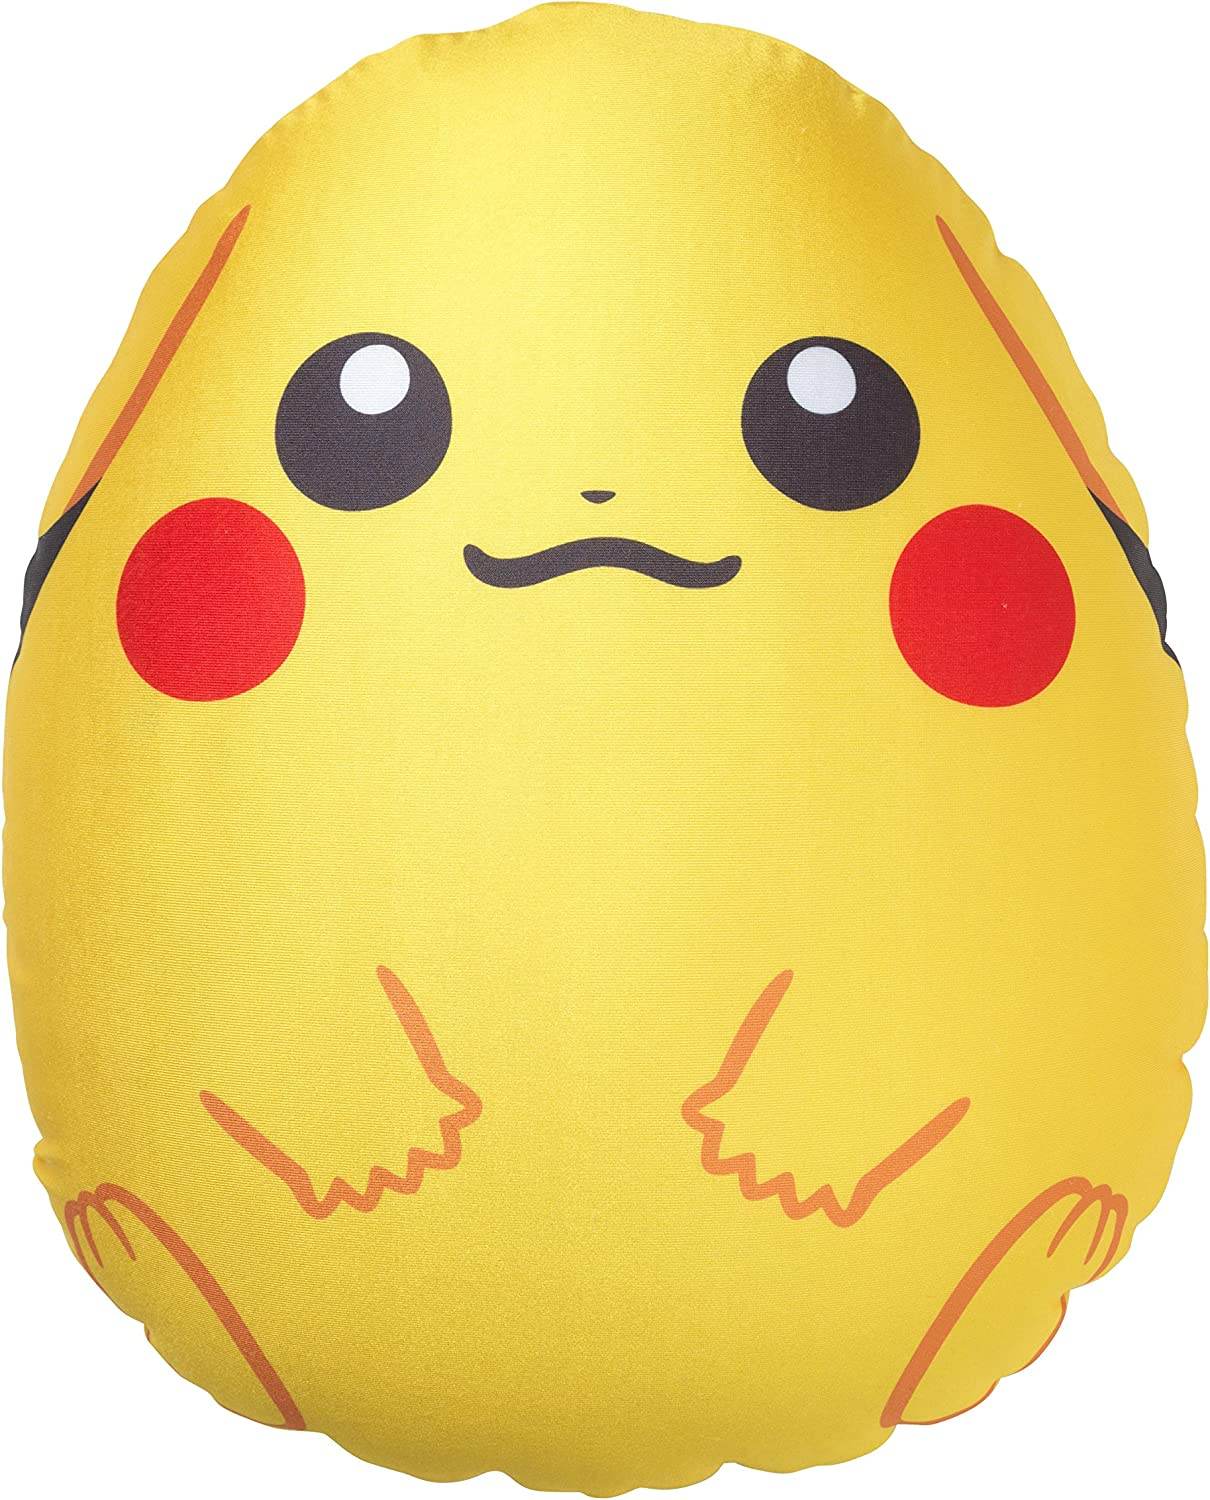 Pokemon Center Original micro beads cushion Pokémon Easter 2016 Pikachu